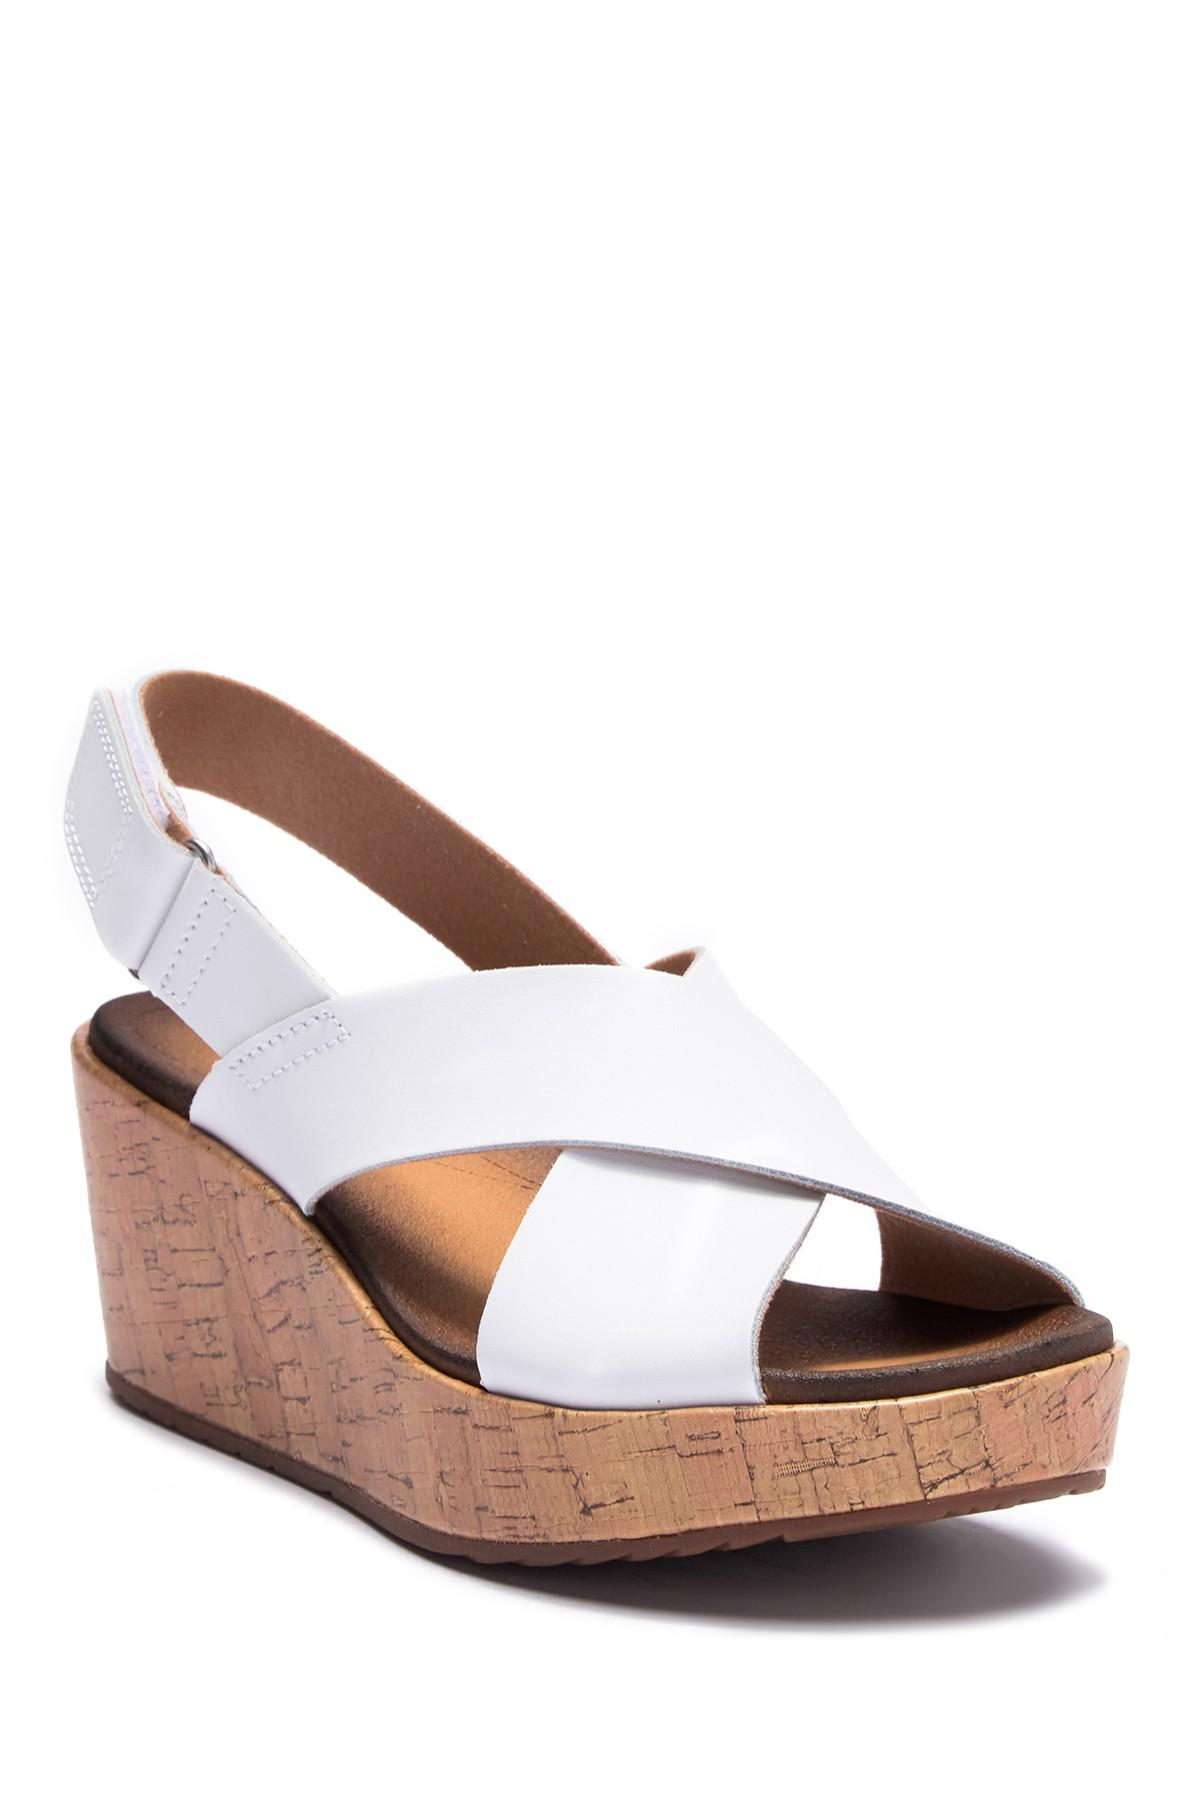 08a29295f7e Lyst - Clarks Stasha Hale Leather Wedge Sandal - Wide Width ...